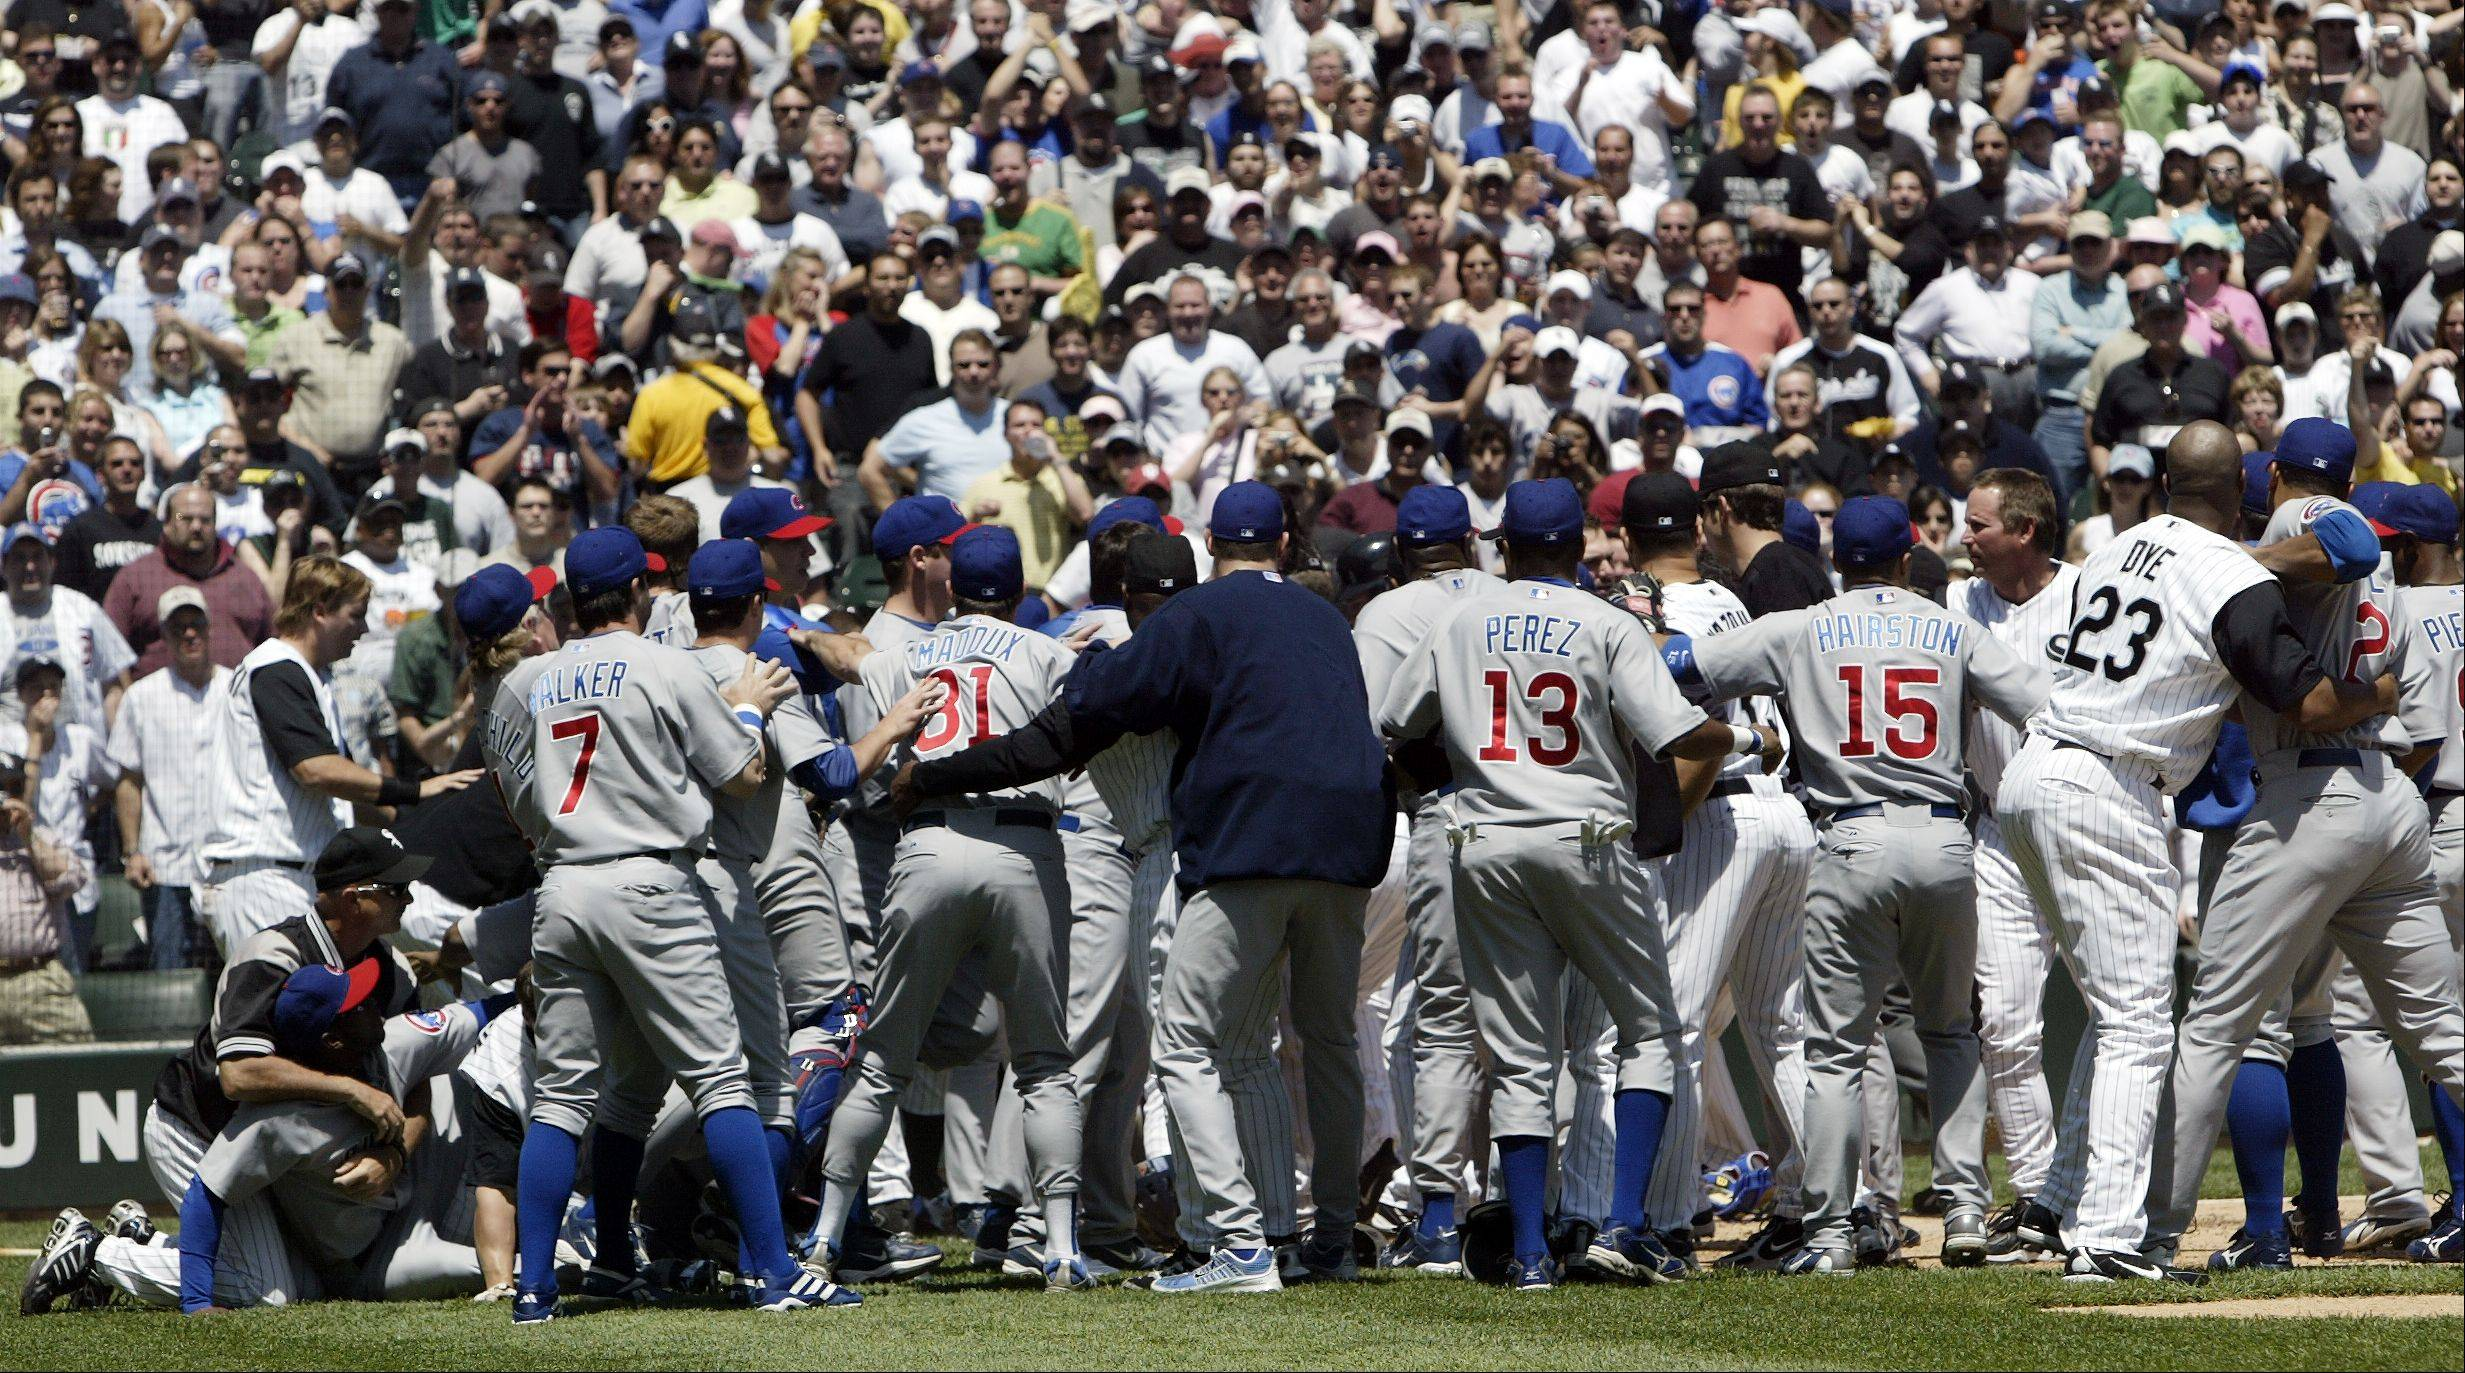 Cubs and Sox fight after Barrett and Pierzynski collide in game 2 on May 20, 2006.